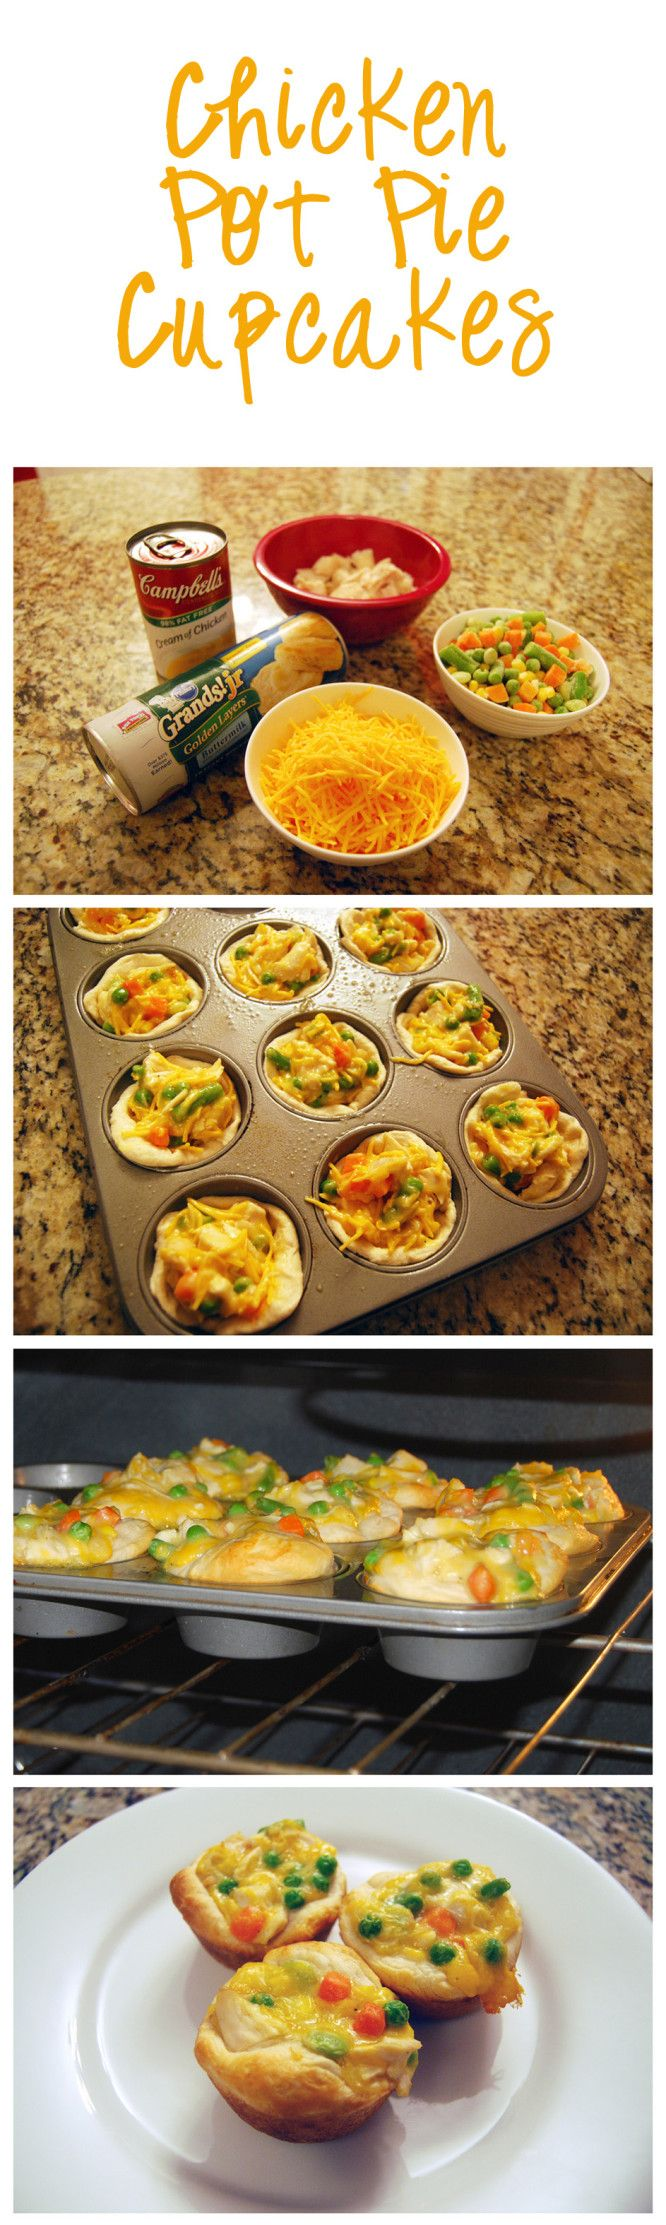 Mini Chicken Pot Pie Cupcakes Recipe Muffins PotPie